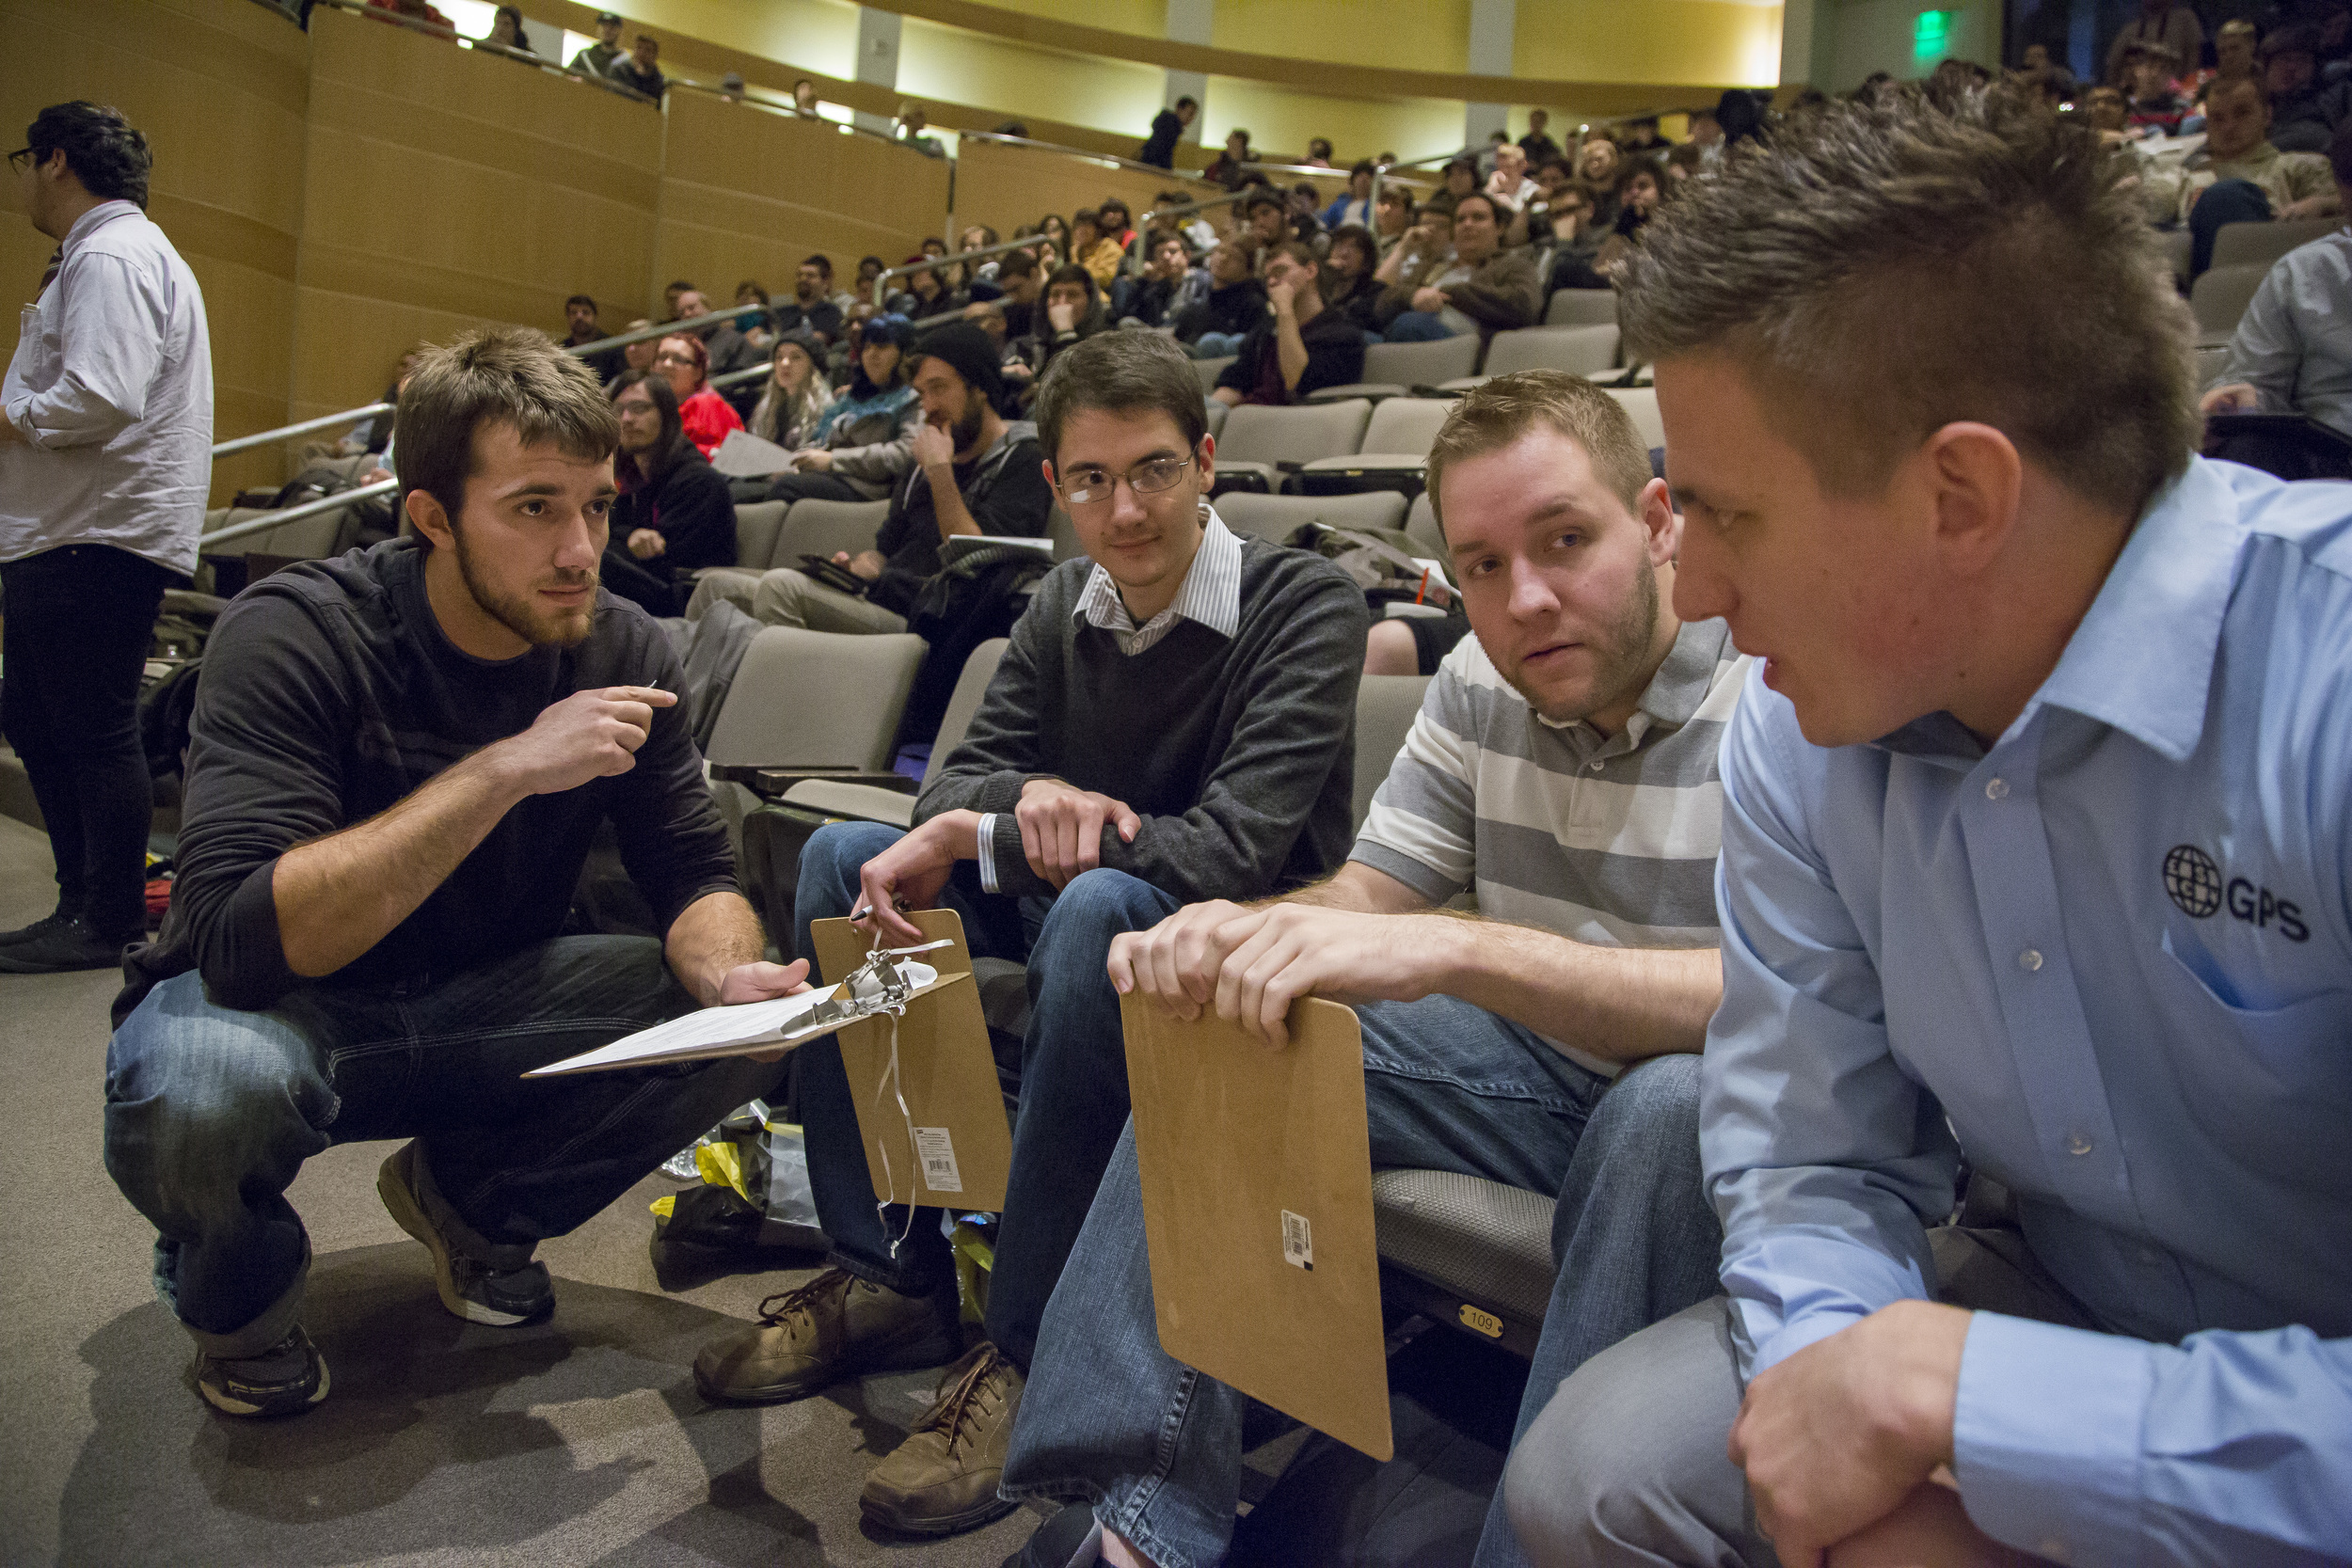 Kevin (center) and other alums judge current student projects at the 2015 December Capstone Project Invitational.